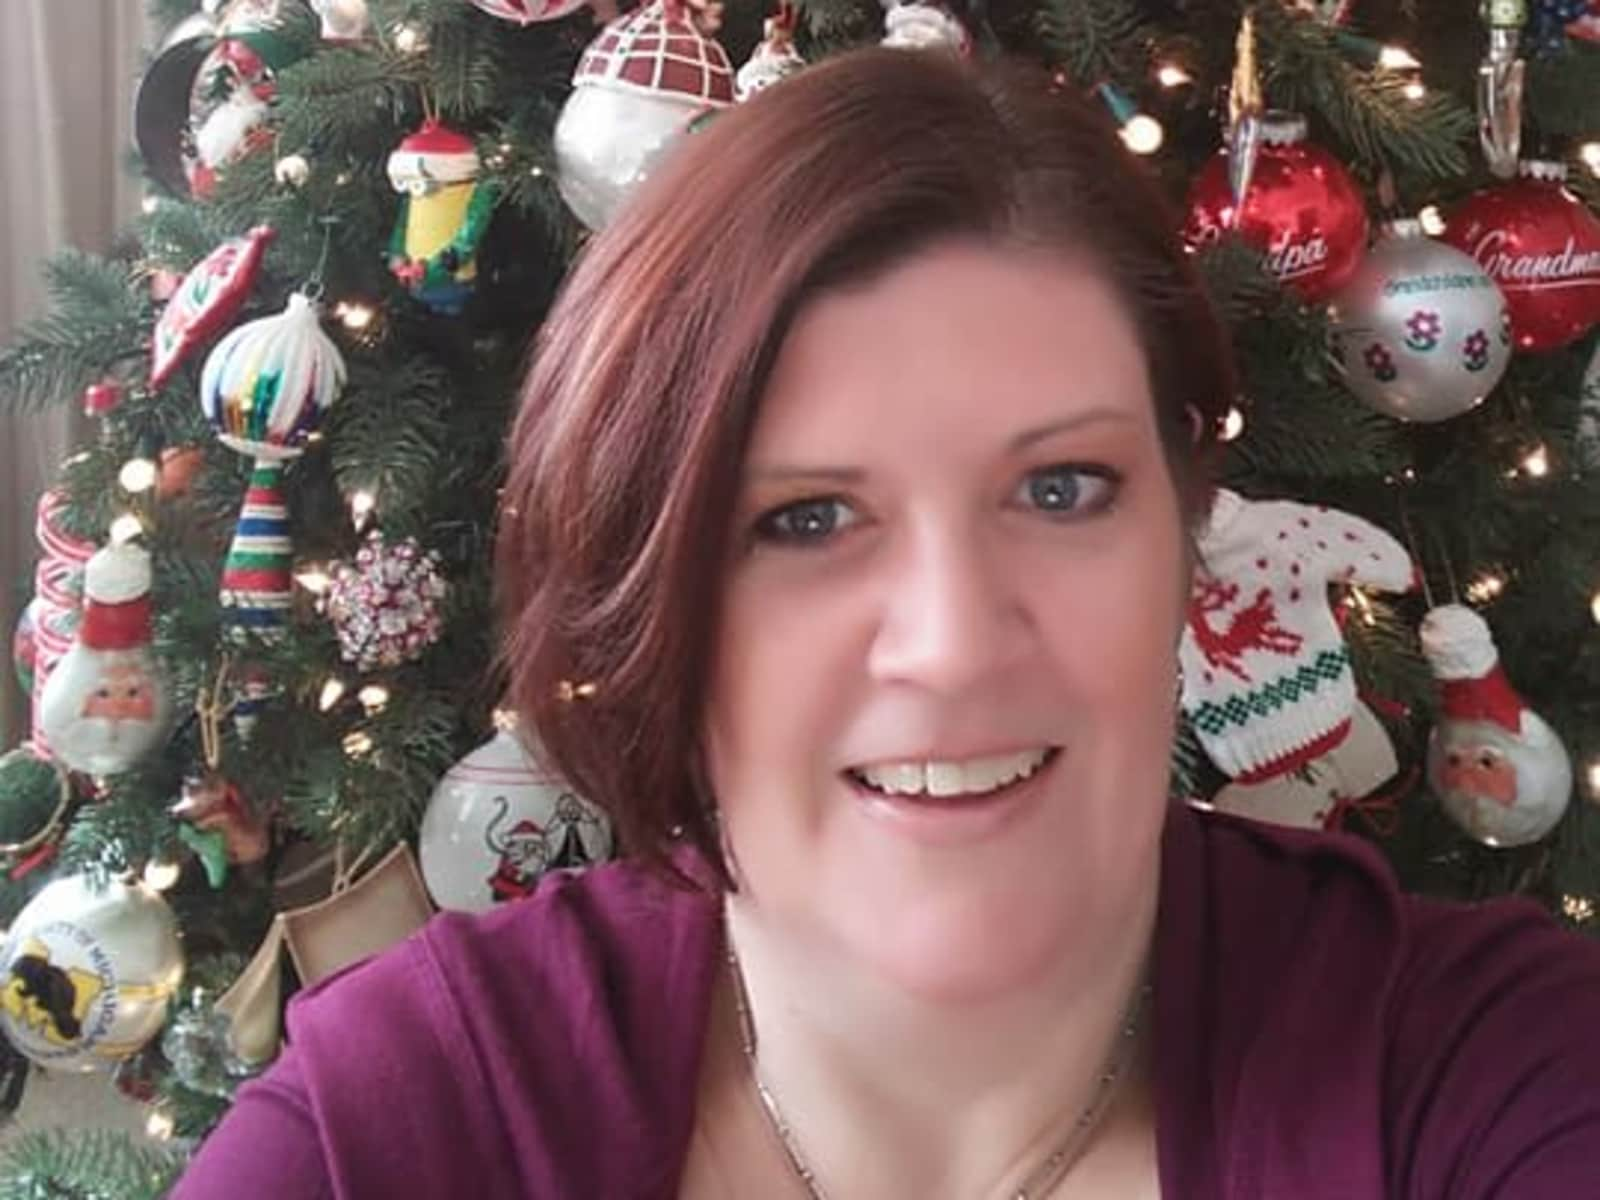 Laurie from Detroit, Michigan, United States